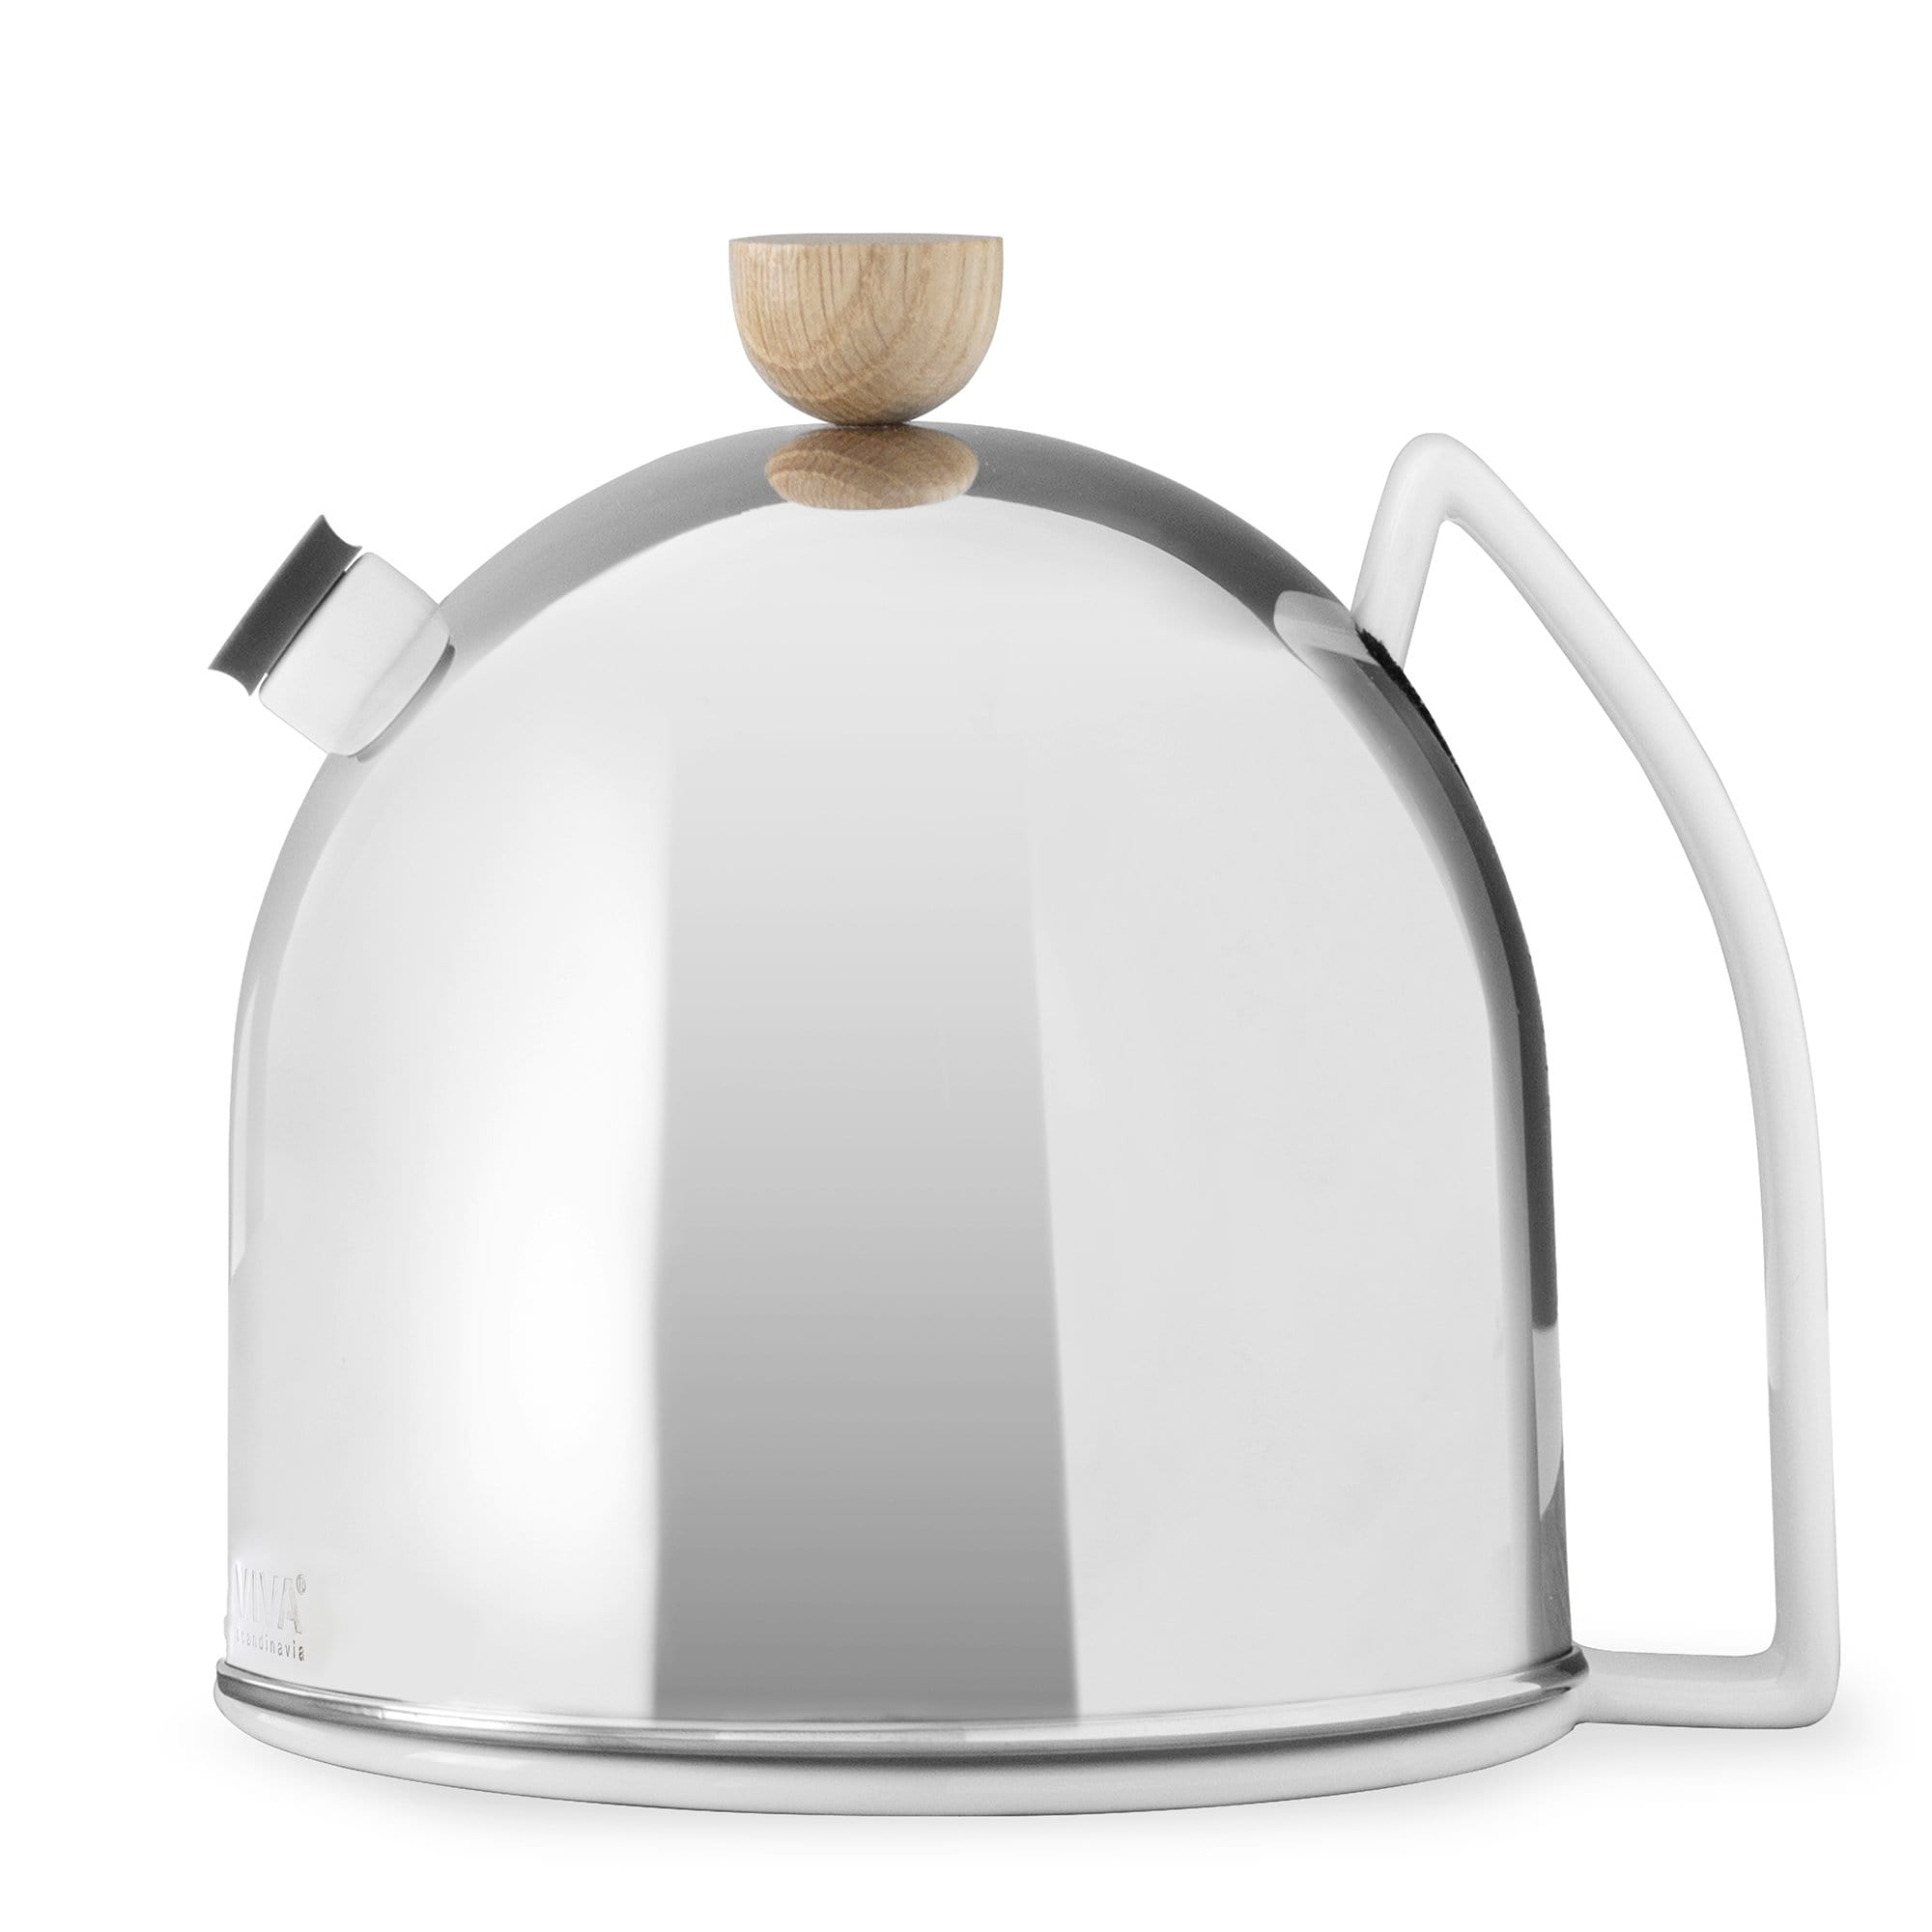 Thomas™ Teapot Large - VIVA